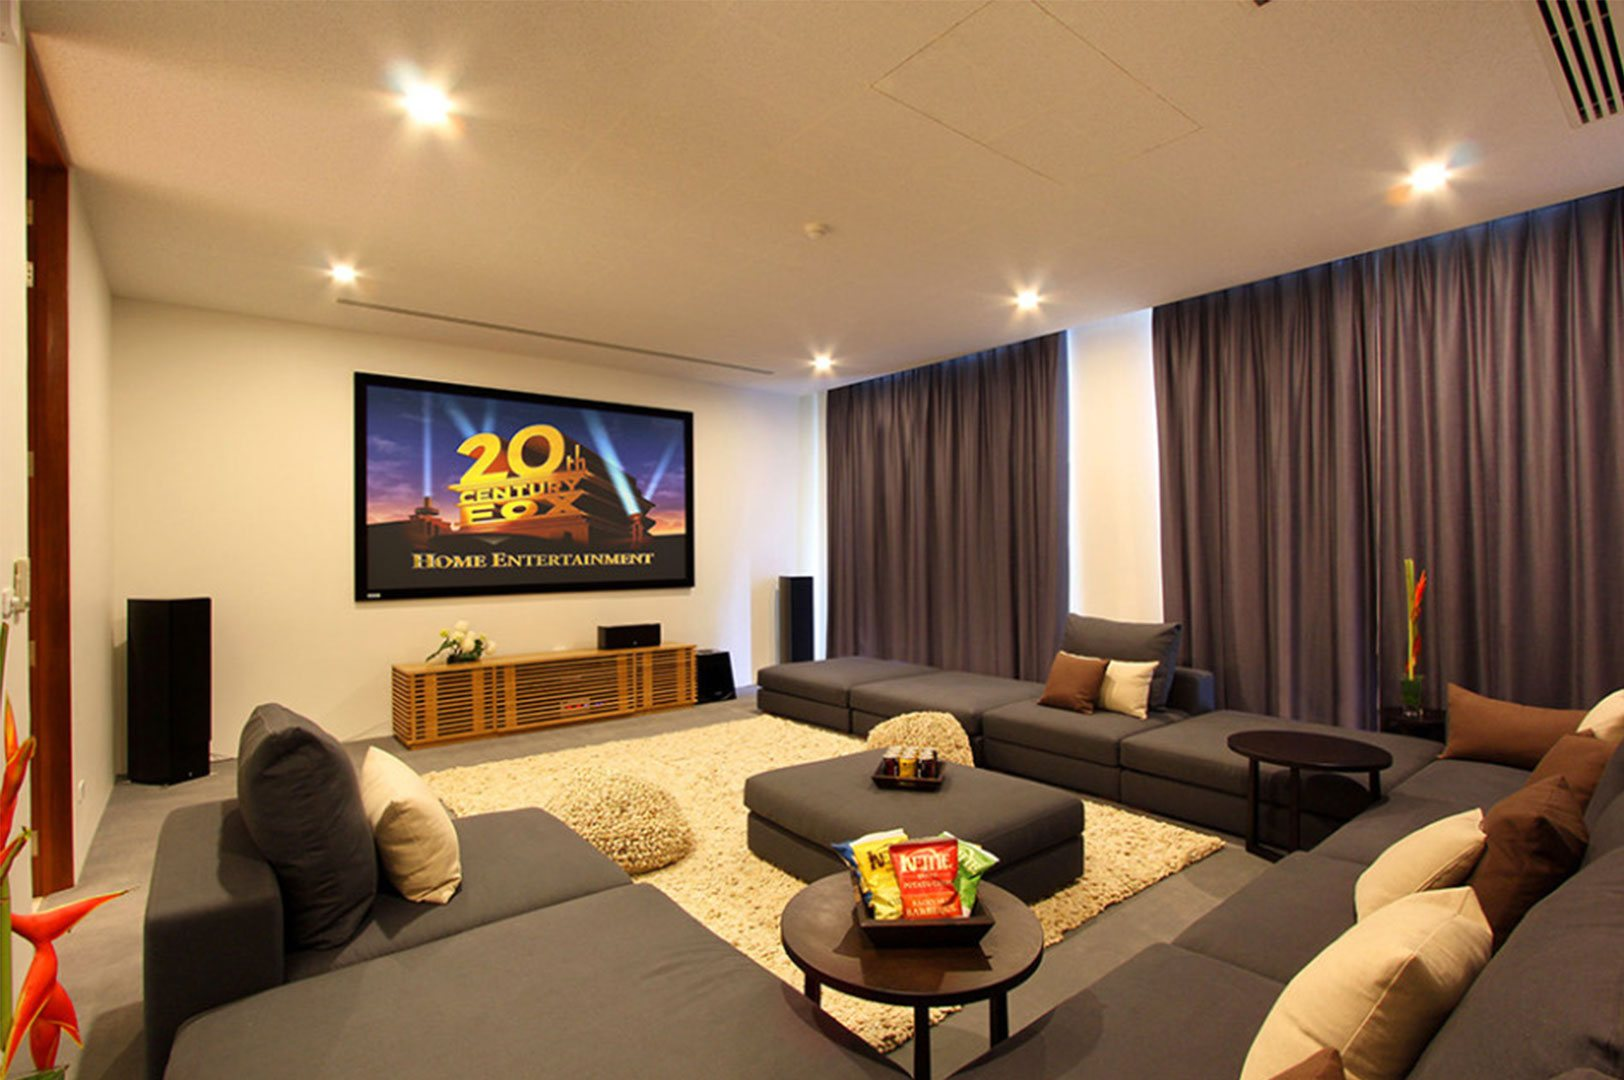 grey family room design ideas to decorate a living room theaters on a budget